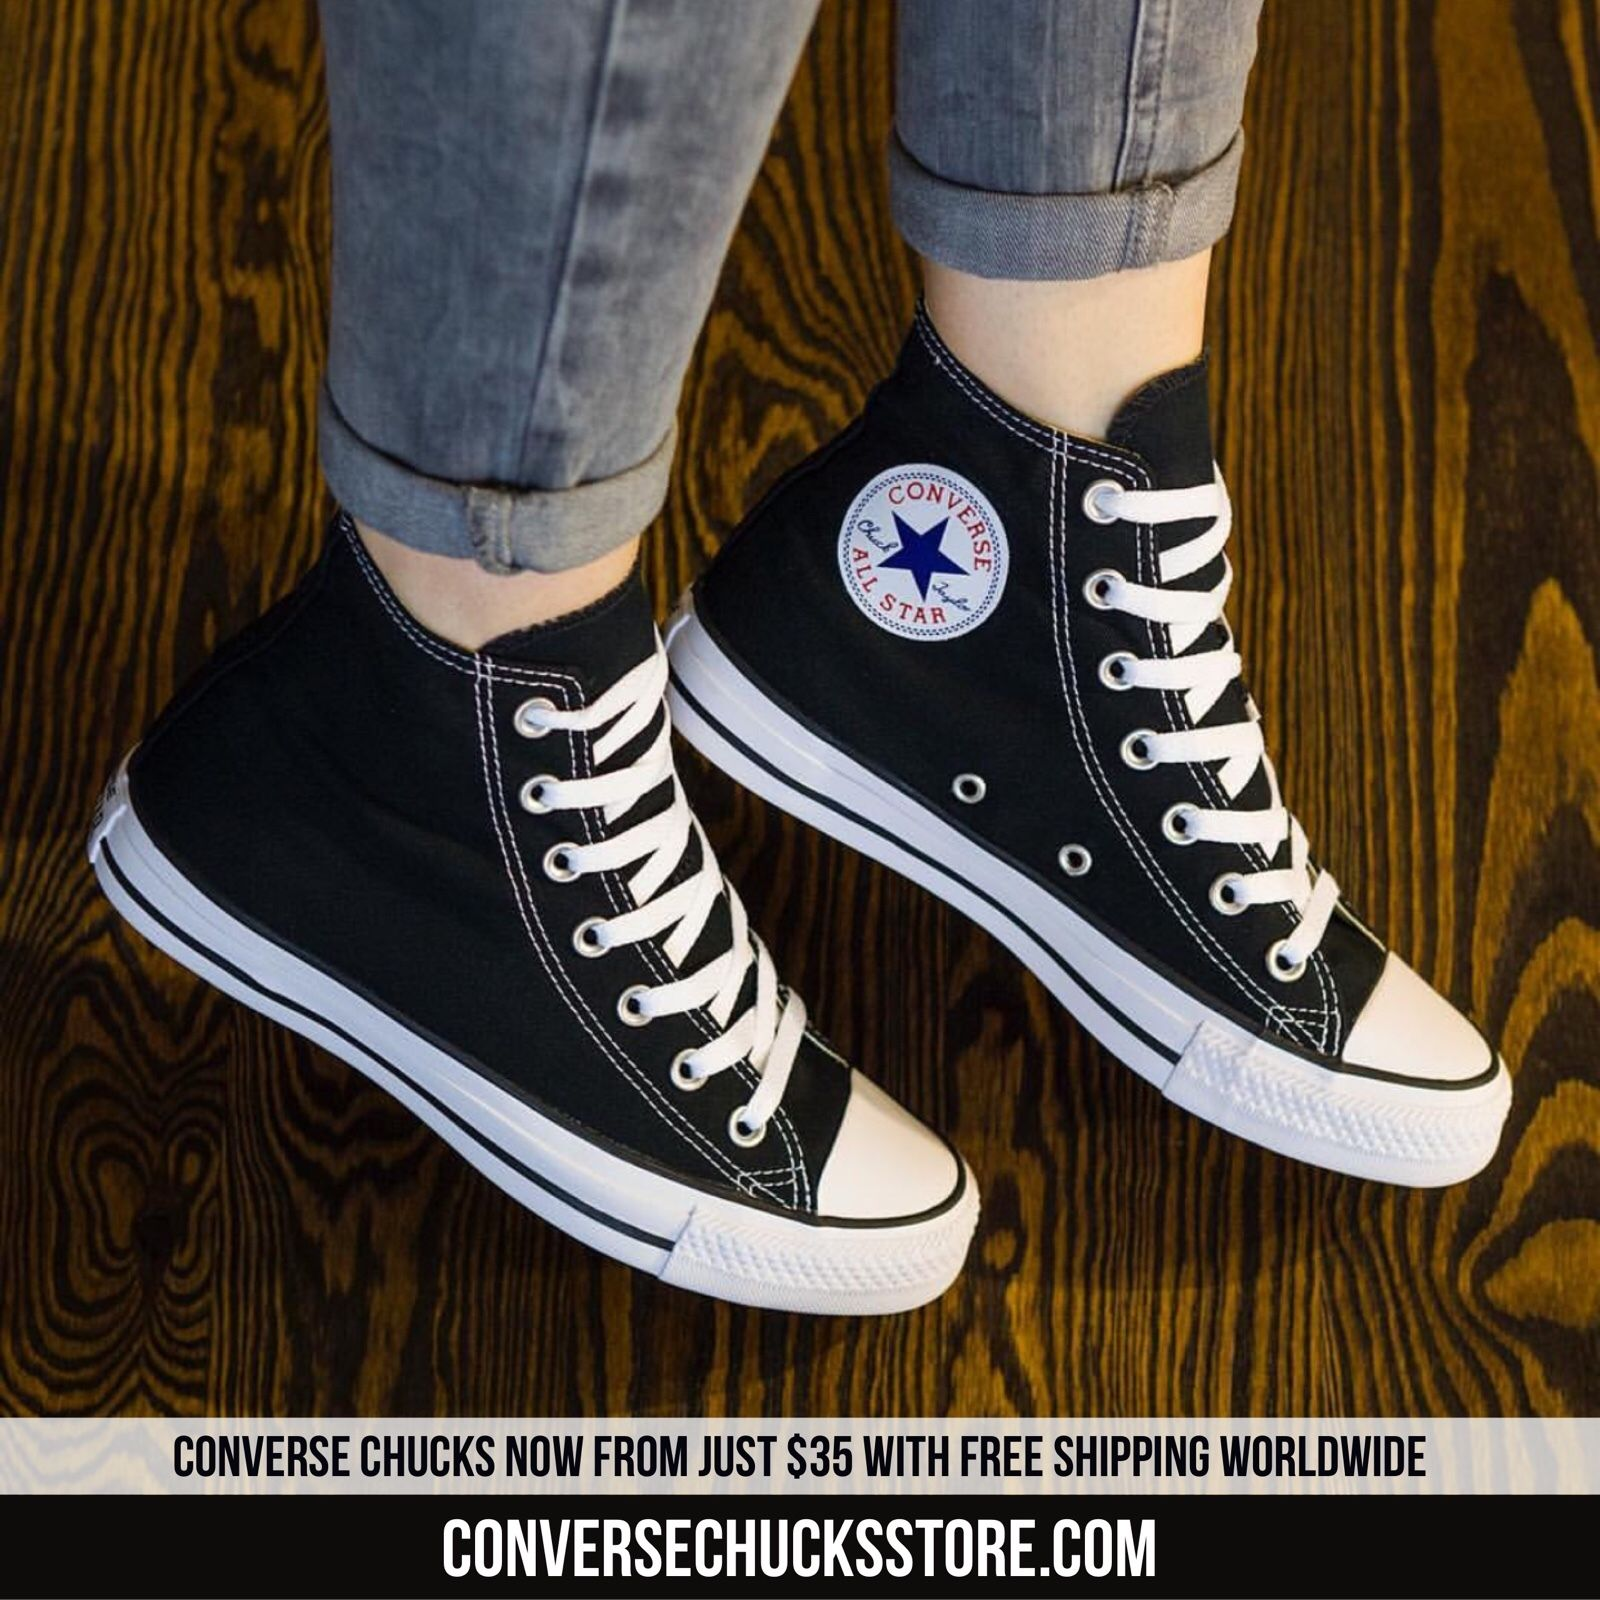 2a79ed5d4141 Chucks from  35 with free worldwide shipping. Order now on our website.   chucks  chucktaylor  chucktaylors